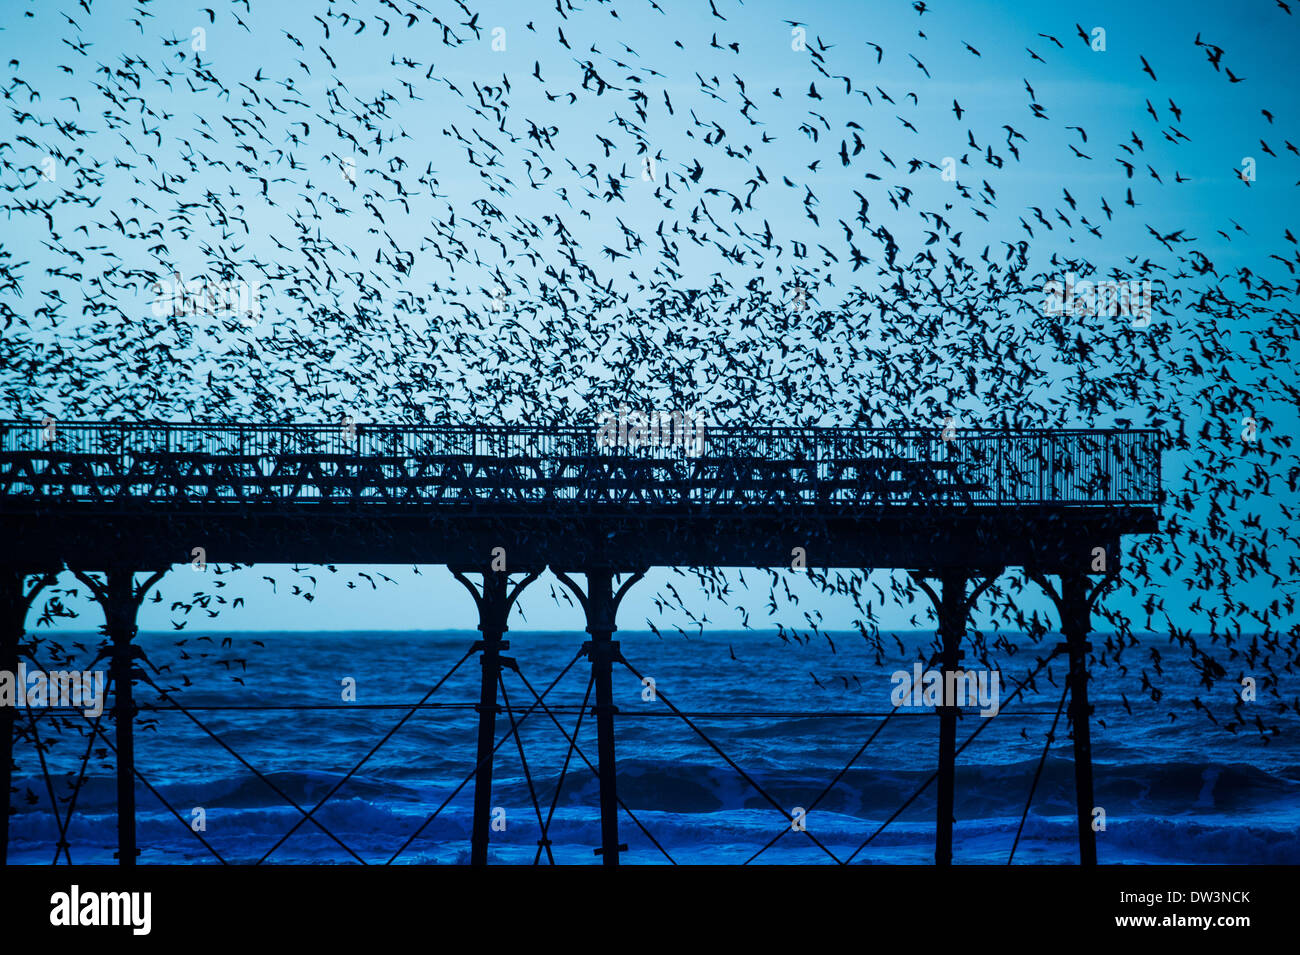 Aberystwyth Wales Uk, Wednesday 26 Feb 2014  Every evening between October and March, flocks of up to 50,00 starlings come in to roost on the cast iron legs of the Victorian seaside pier at Aberystwyth on the west wales coast, UK.  One of only three 'urban' roosts in the UK, the spectacular sight draws crowds  of people at sunset  each day   photo Credit: keith morris/Alamy Live News - Stock Image